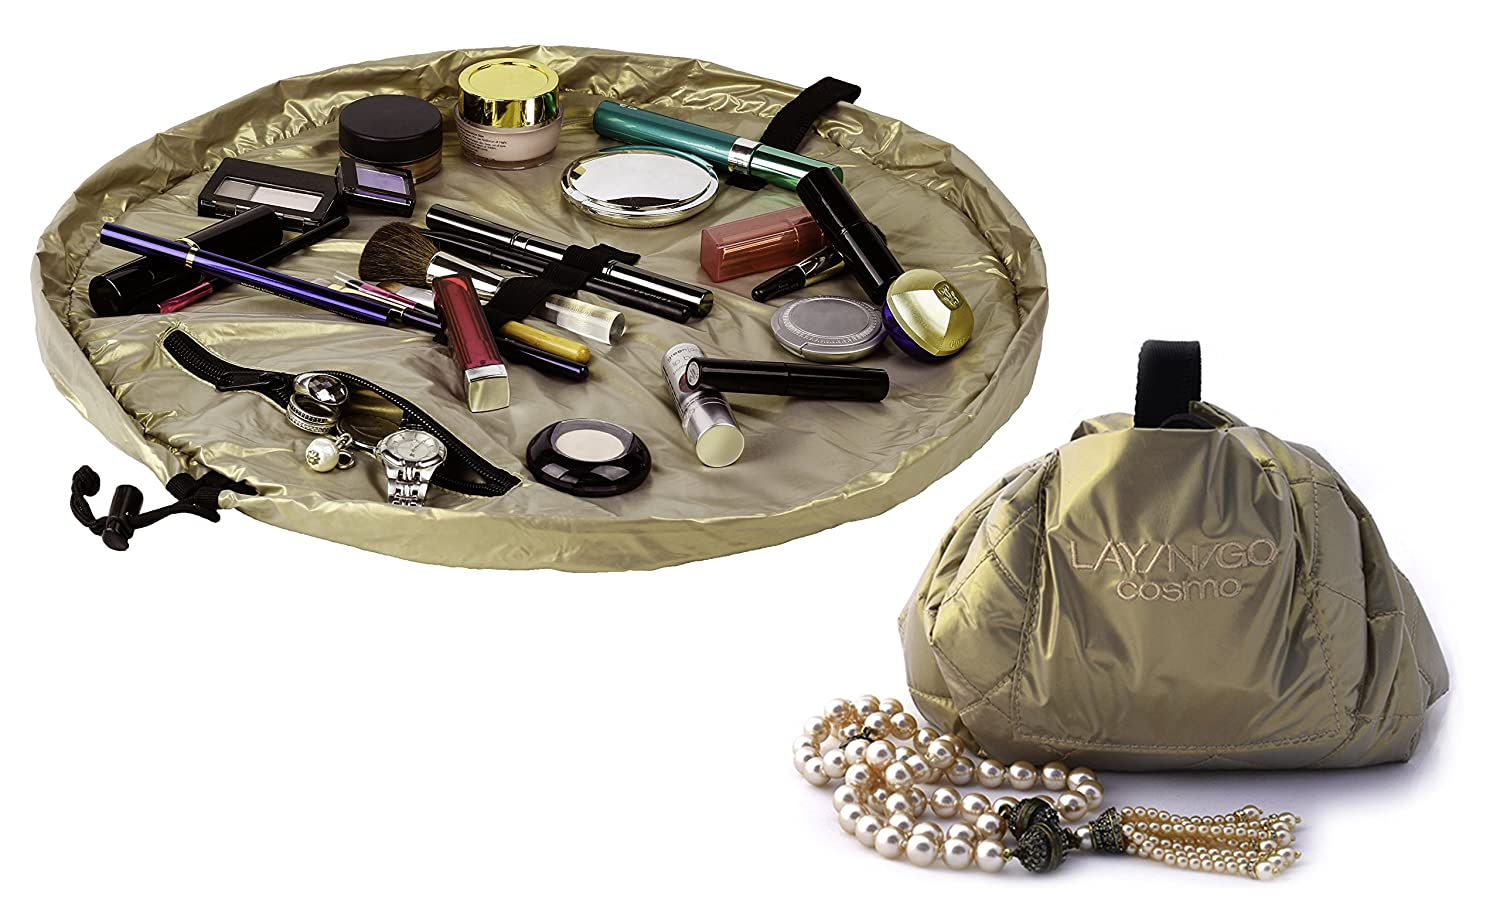 Lay-N-Go Cosmo Makeup Kit, 20-Inch, Gold 3209